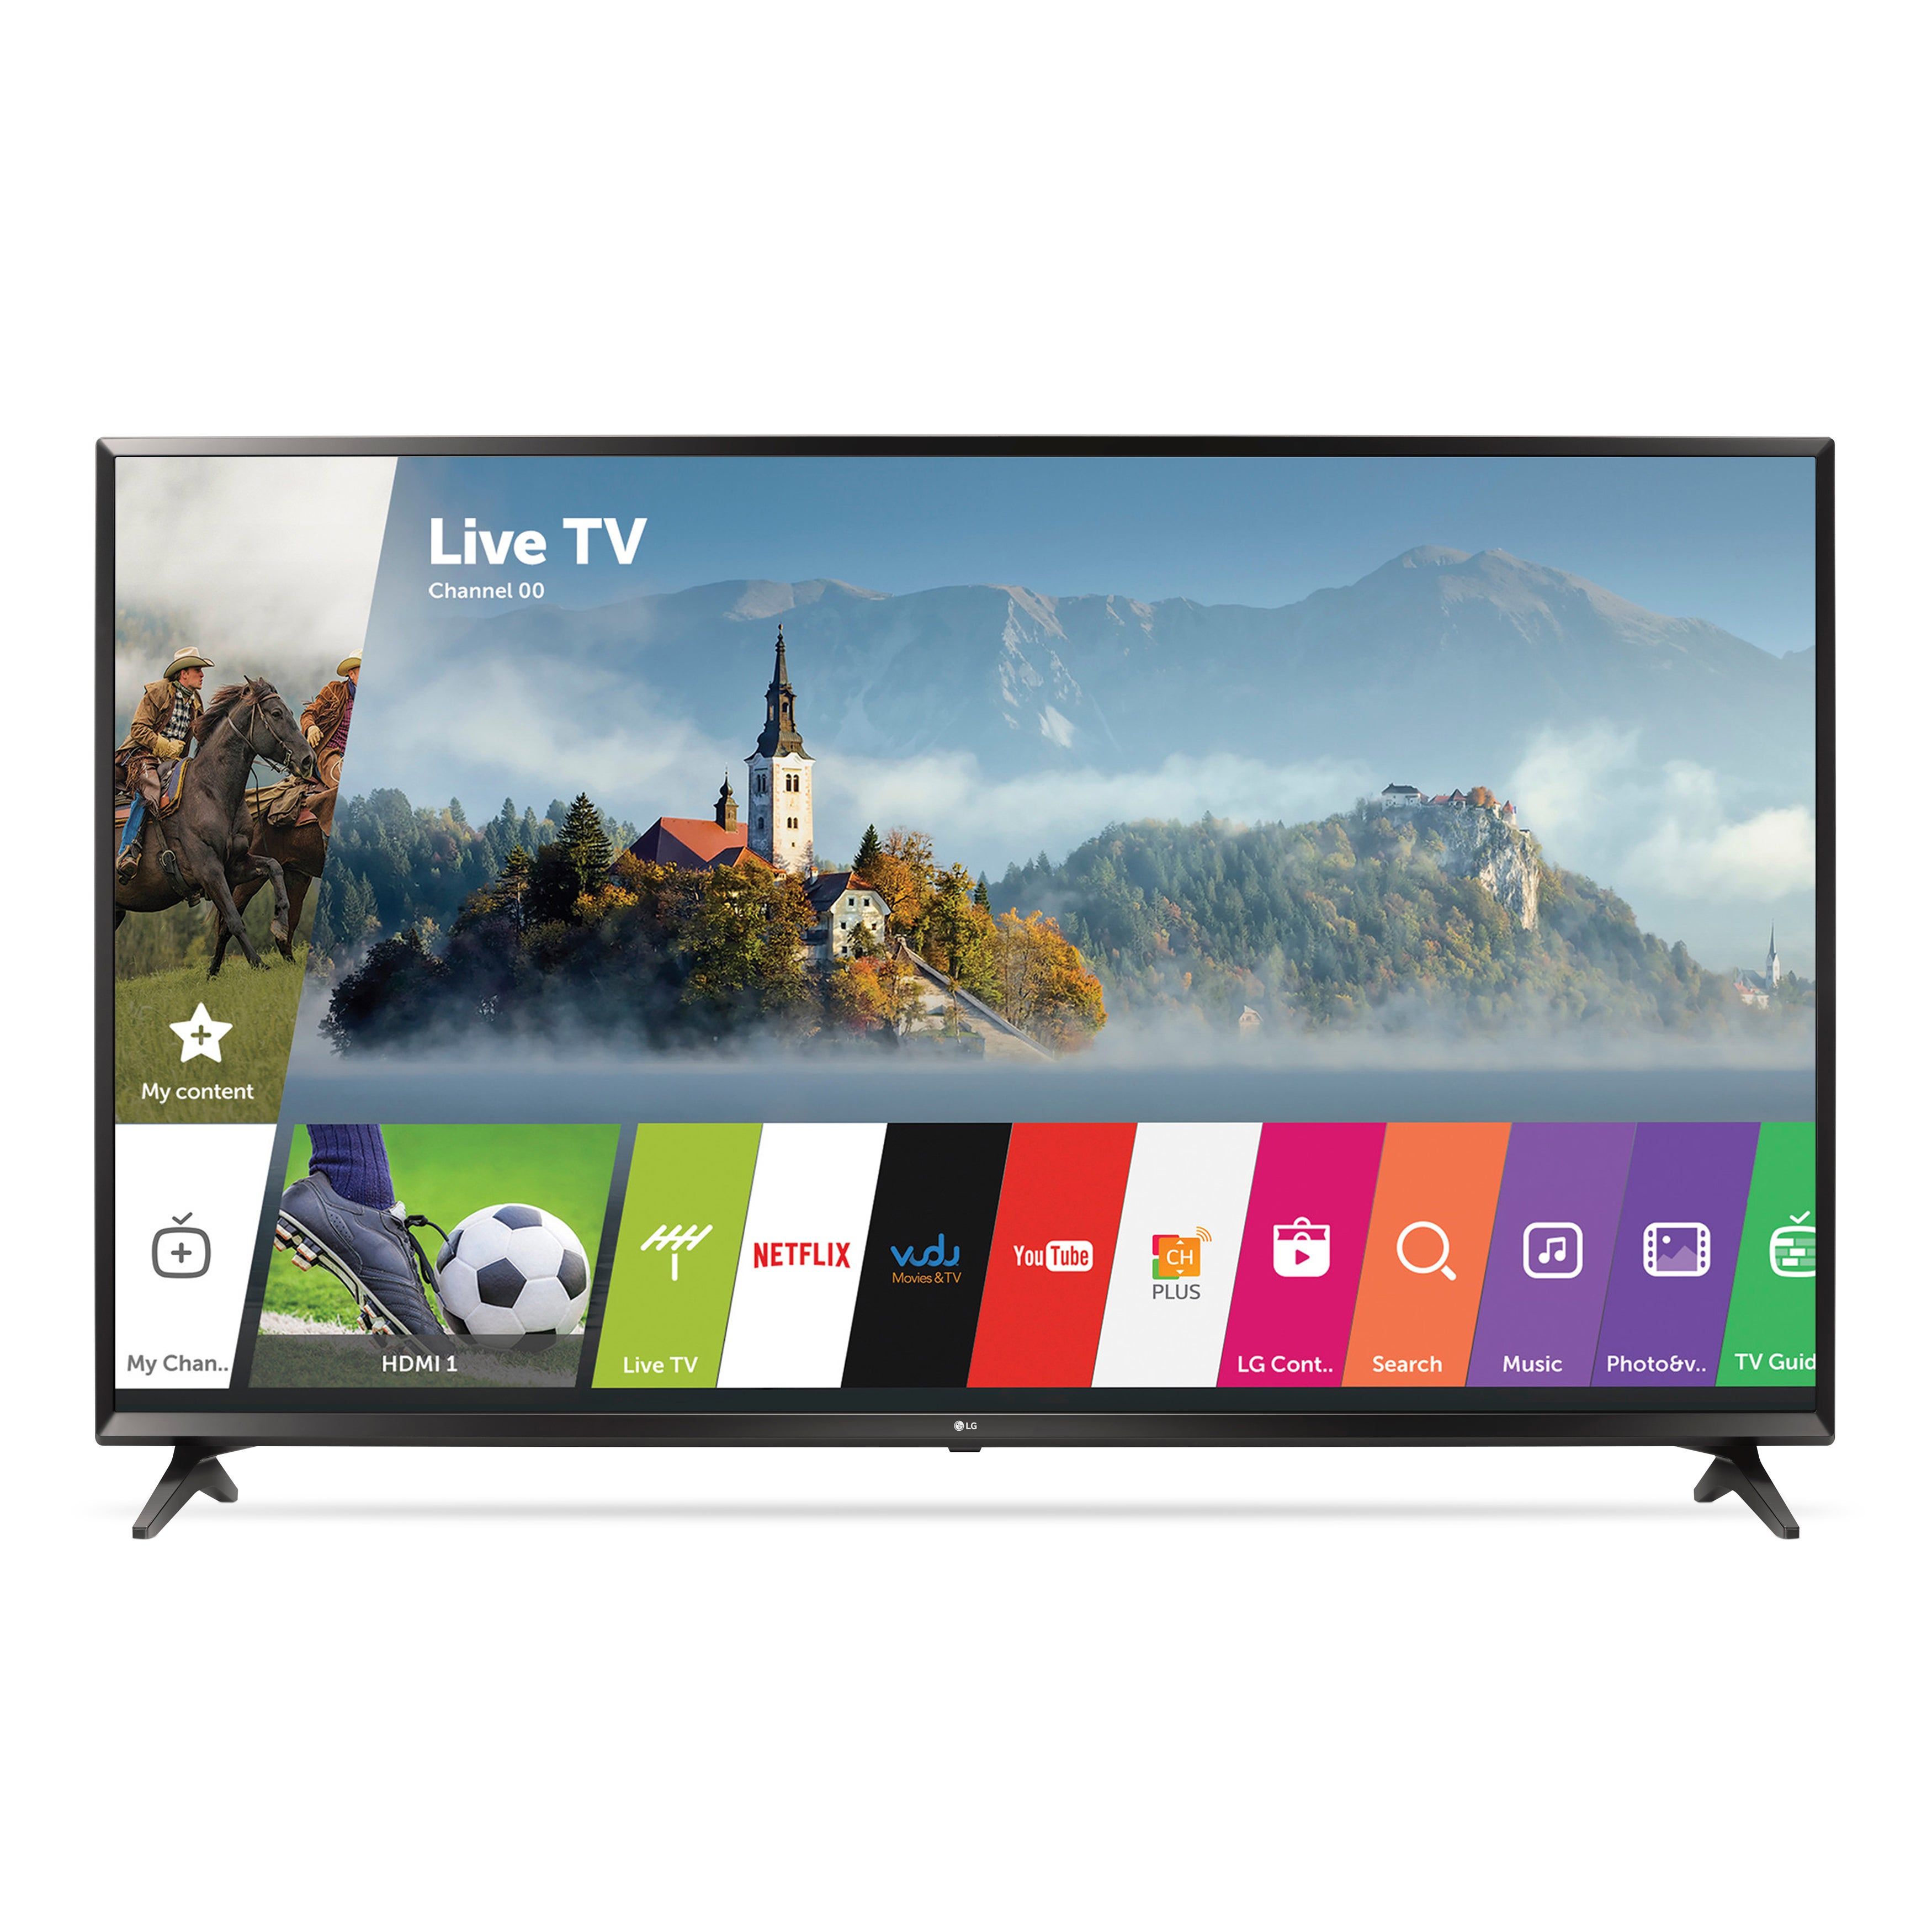 Televisions | Find Great TV & Video Deals Shopping at Overstock.com